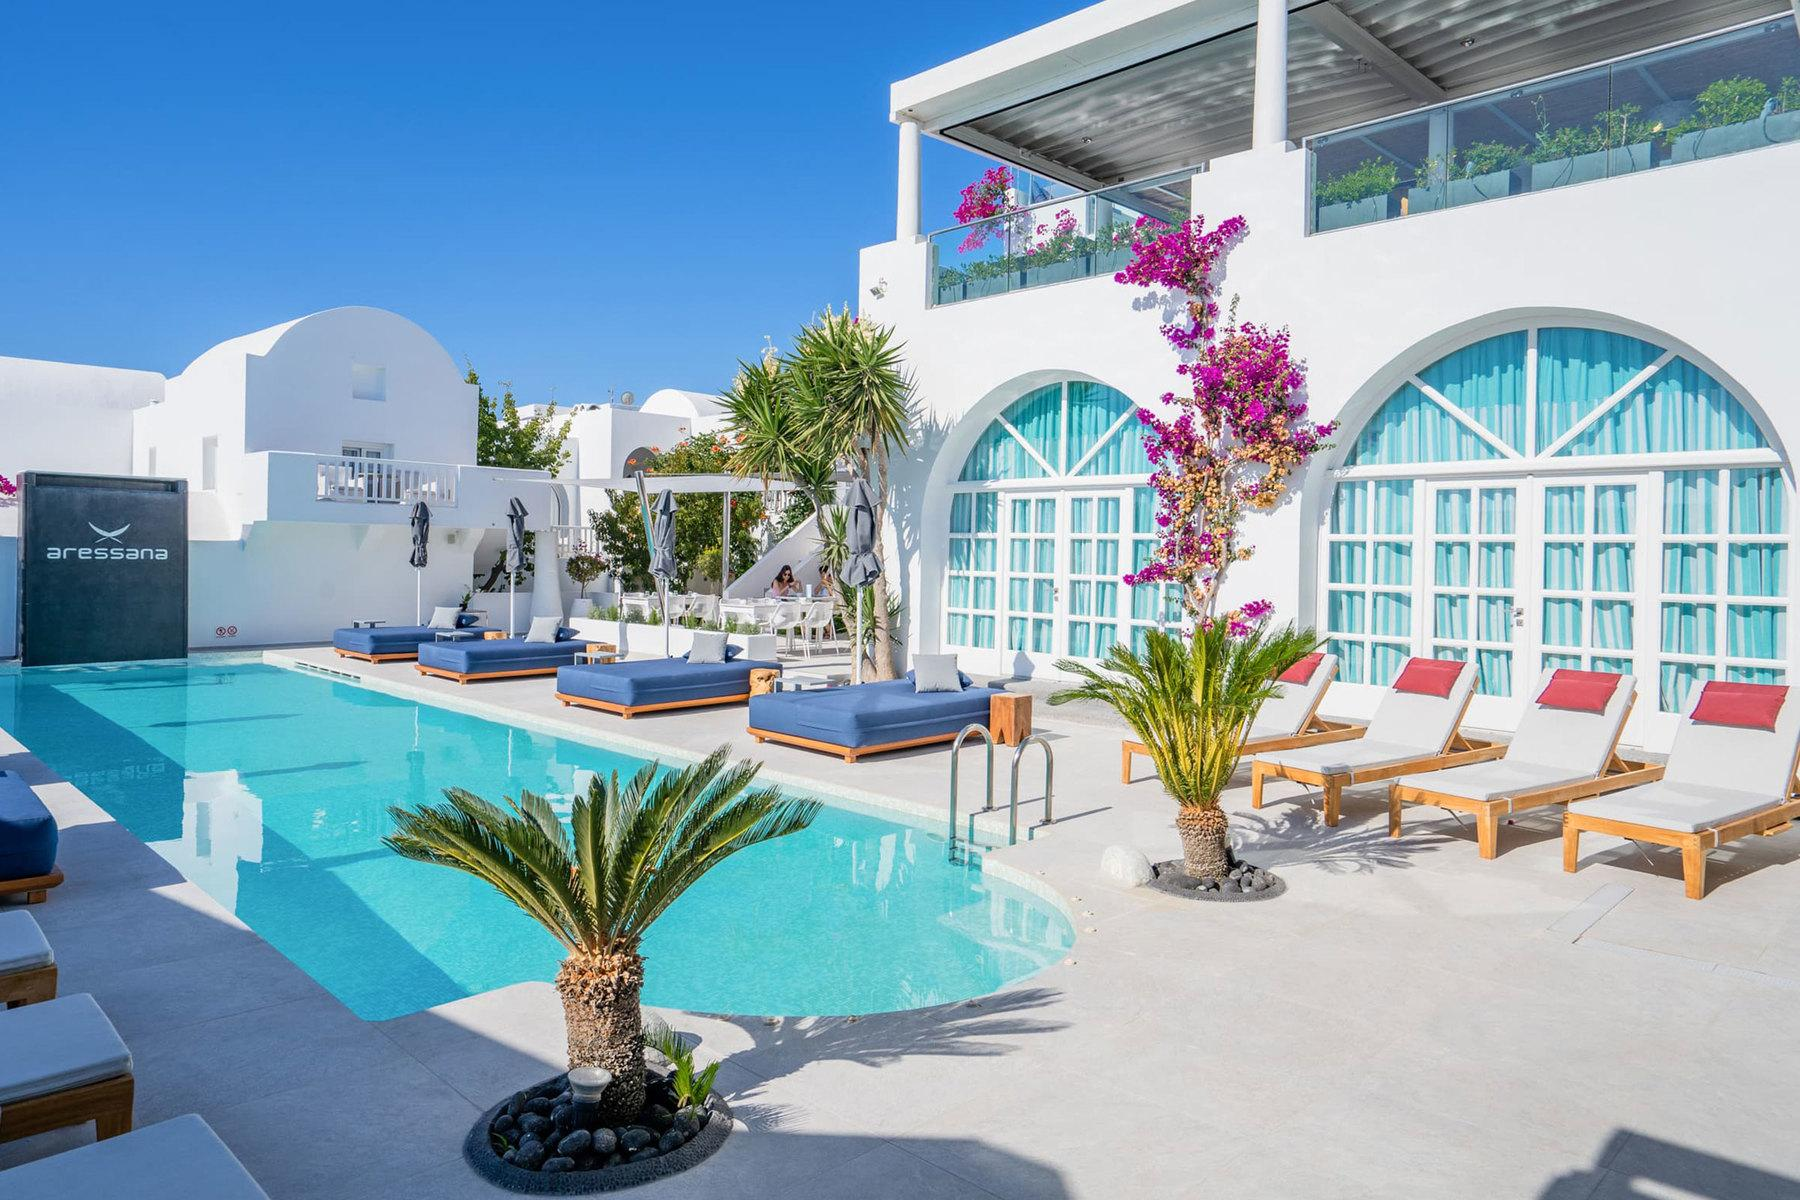 Aressana Spa Hotel and Suites in Fira, Santorini, Greek Islands